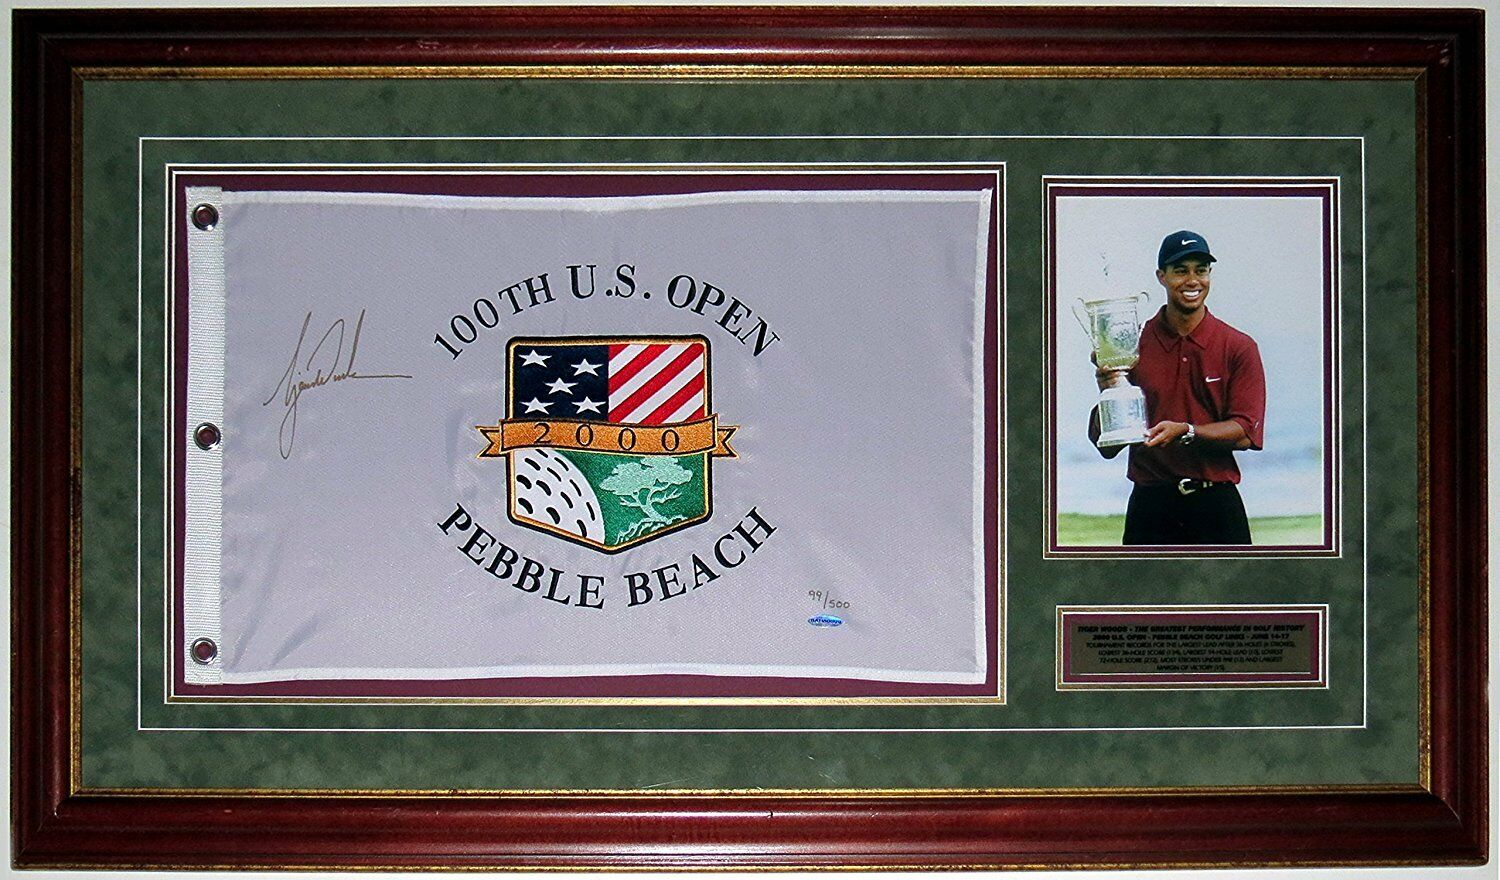 TIGER WOODS AUTOGRAPHED 2000 US OPEN FLAG UDA COA LE /500 CUSTOM FRAMED 8X10